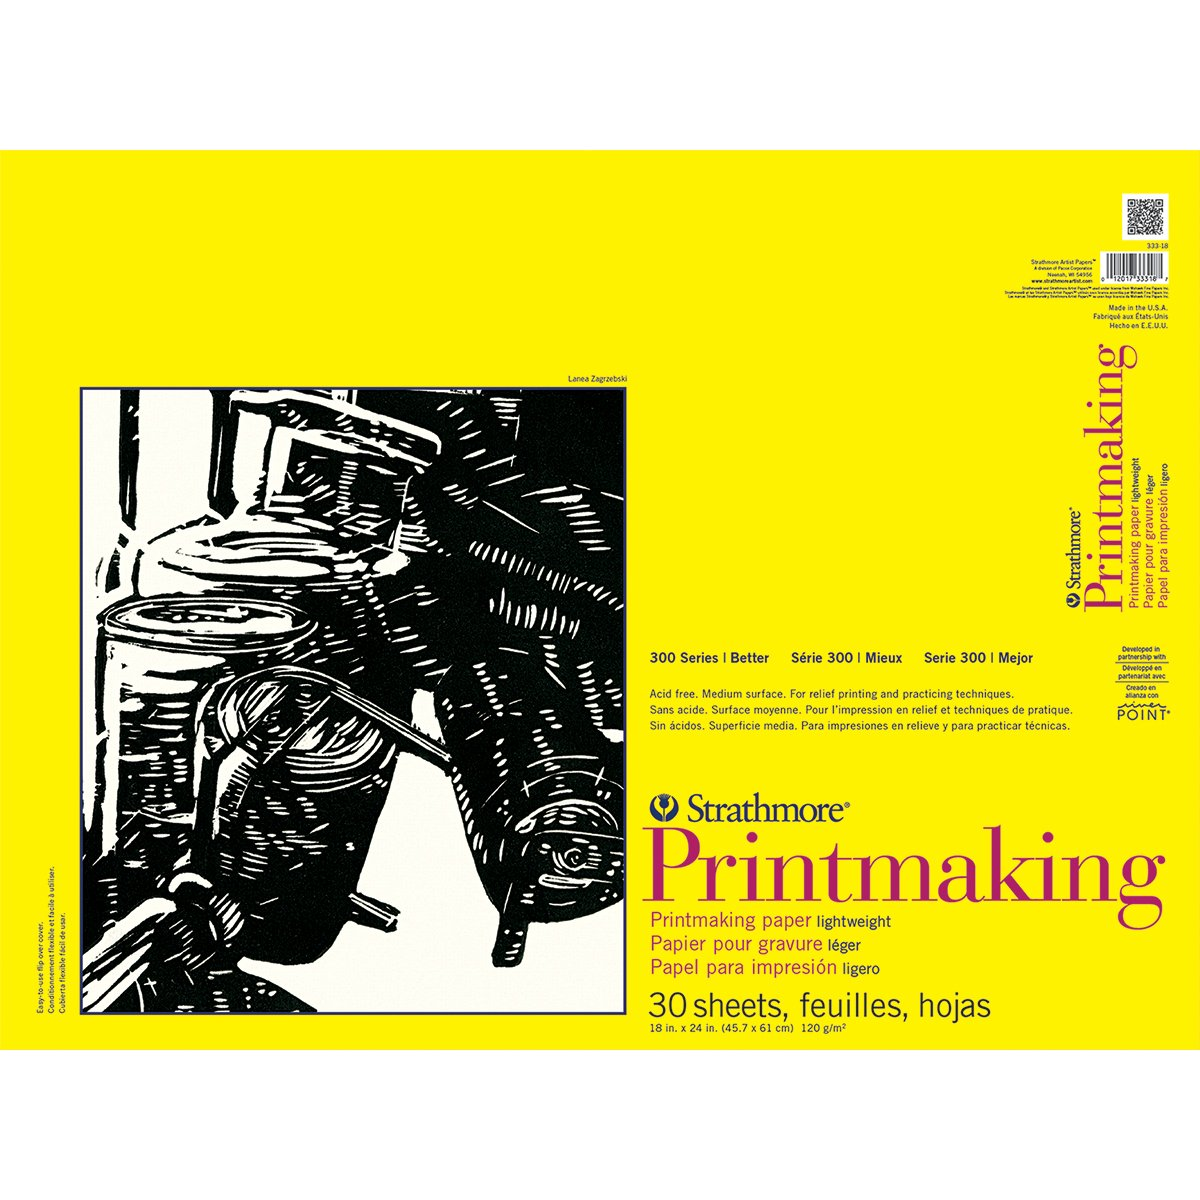 Strathmore 333-18 300 Series Printmaking, Lightweight, 18x24 Glue Bound, 40 Sheets 18x24 Glue Bound STR-333-18